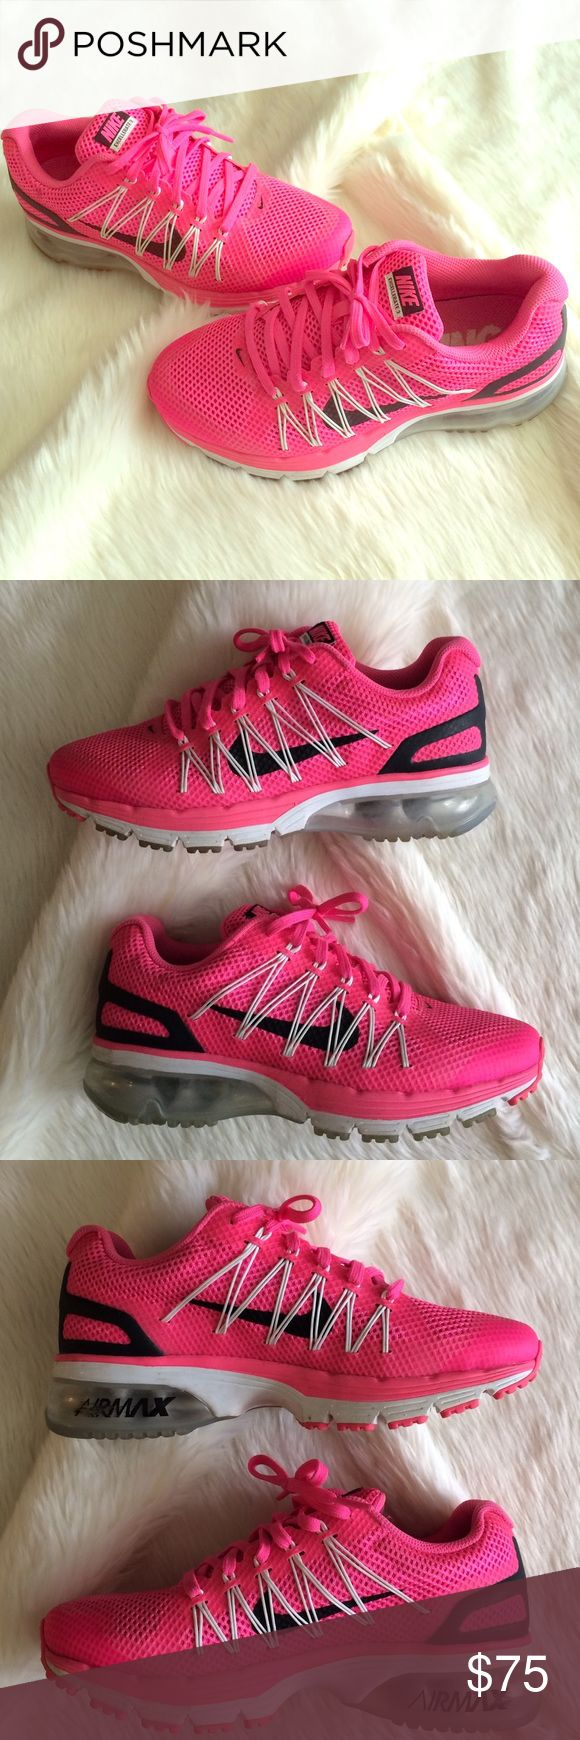 """💗👟Women's Nike Excellerate 3 Air Max!👟💗 💗👟Women's Nike Excellerate 3 Air Max!👟💗Size 7. Fit true to size. In Excellent Used Condition! VERY minimal wear to shoes as reflected in photos! These are very clean + have only been worn a few times. """"Air Max"""" logo on the inside of each shoe is slightly scuffed. These look awesome with leggings + sweats for bumming around campus this fall!📚📓Reasonable Offers Via the 👉🏼""""Offer""""👈🏼Button Only Please!😊🚫No Trades🚫 Nike Shoes Athletic Shoes"""